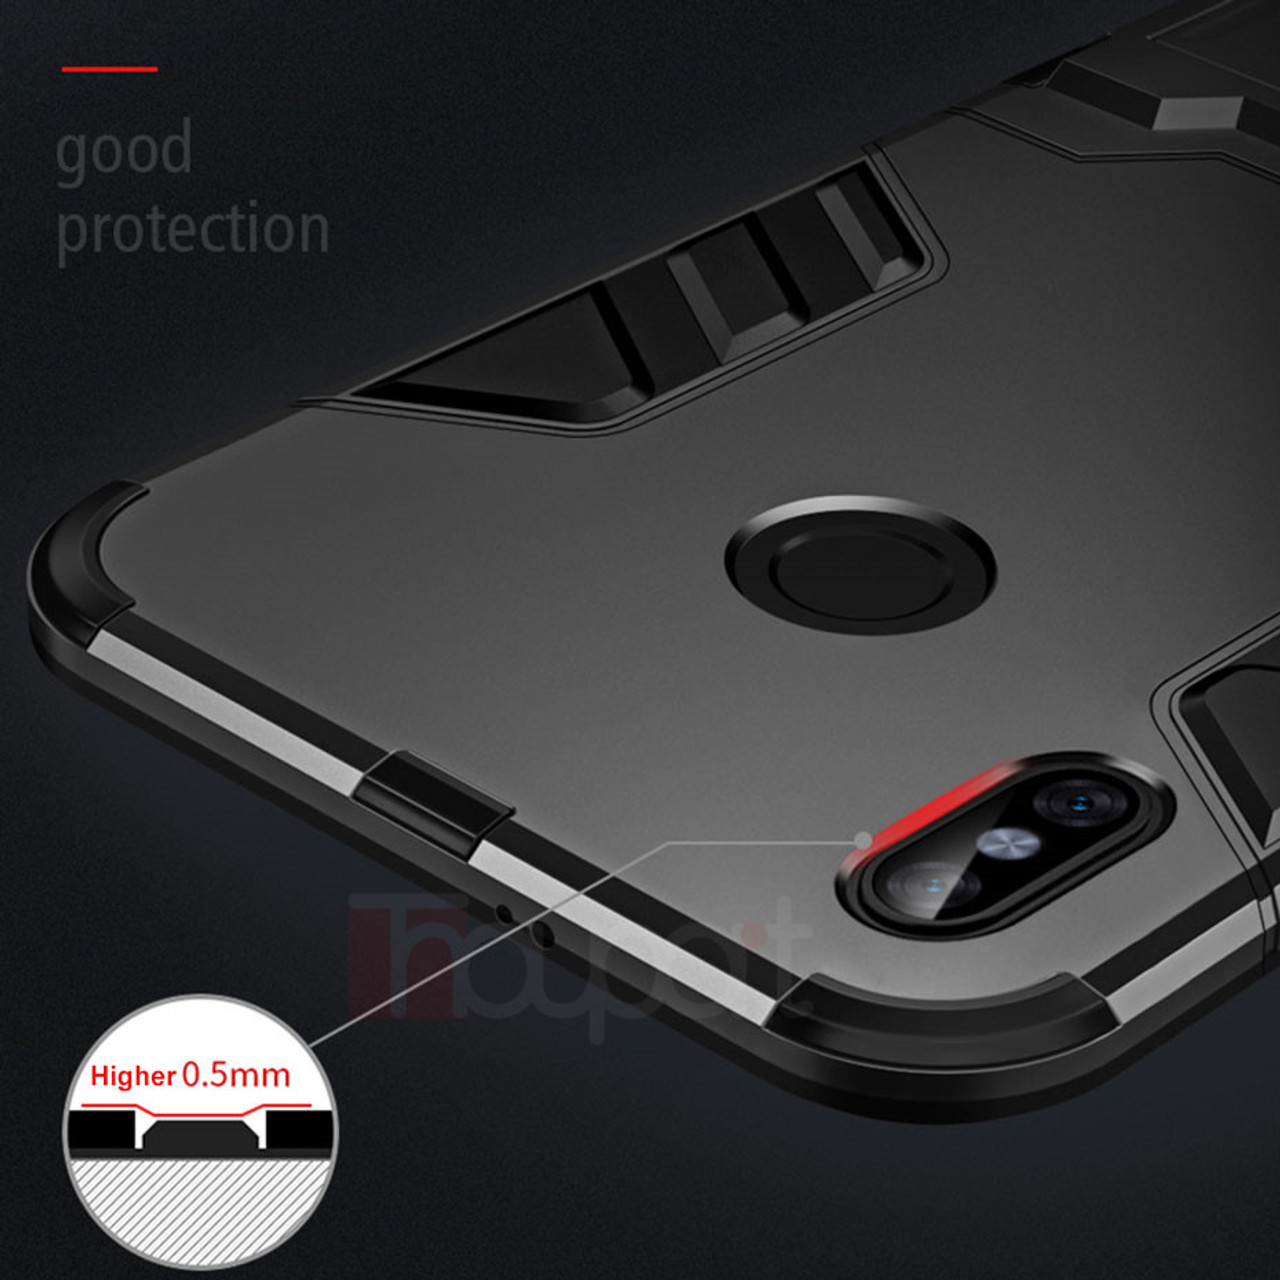 Thouport Case For Xiaomi Redmi Note 5 Pro Plus Shockproof Kickstand Armor Series Hybrid Pc Silicone Cover